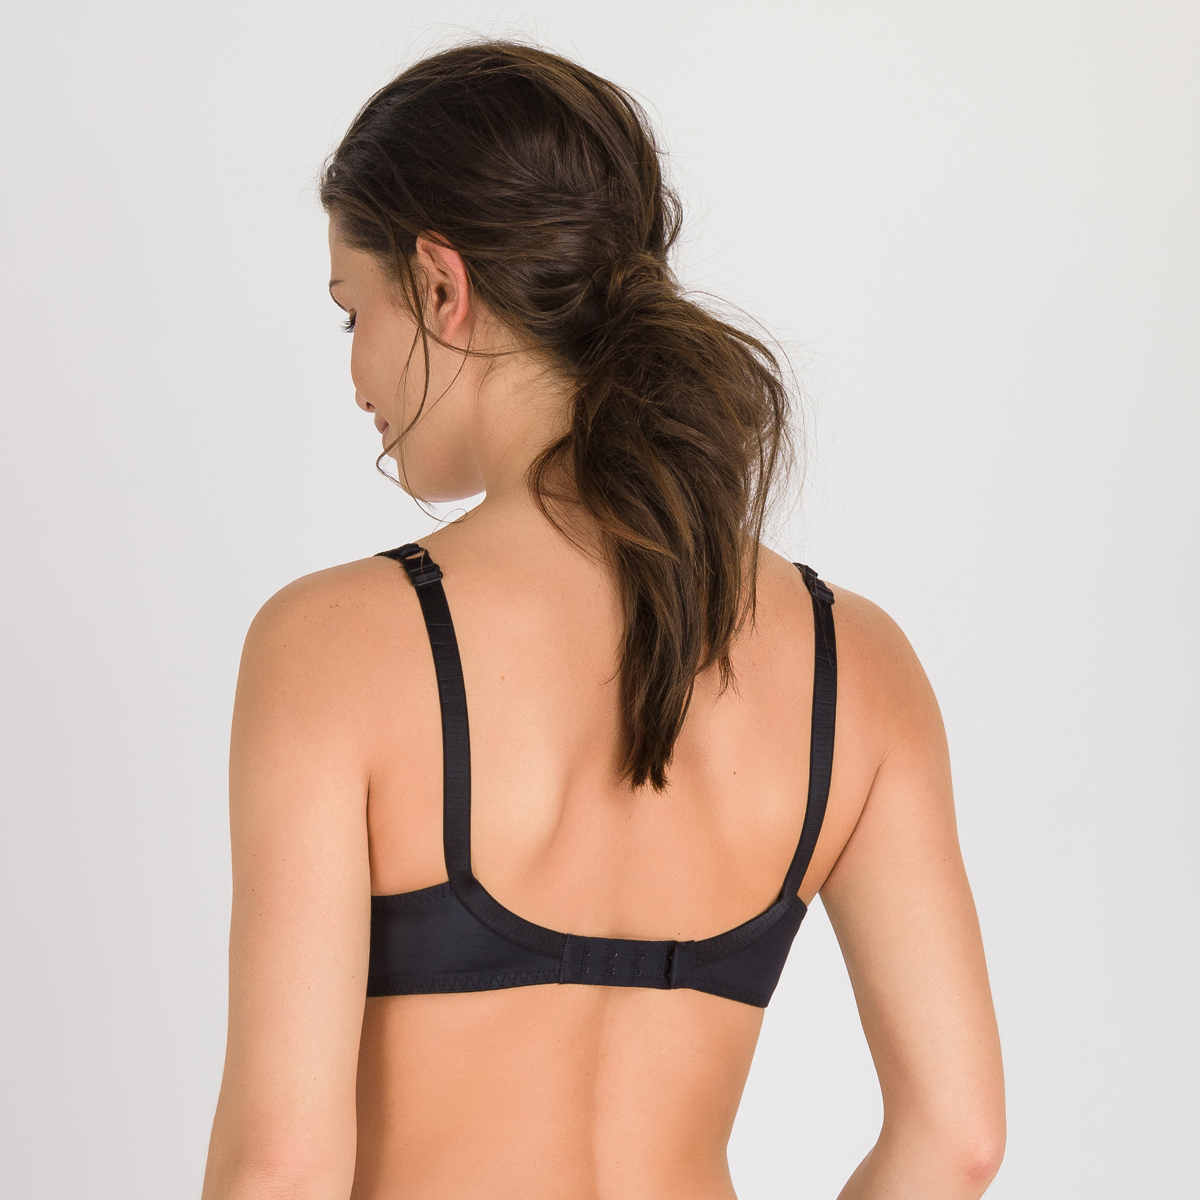 Reggiseno con ferretto nero Perfect Silhouette, , PLAYTEX